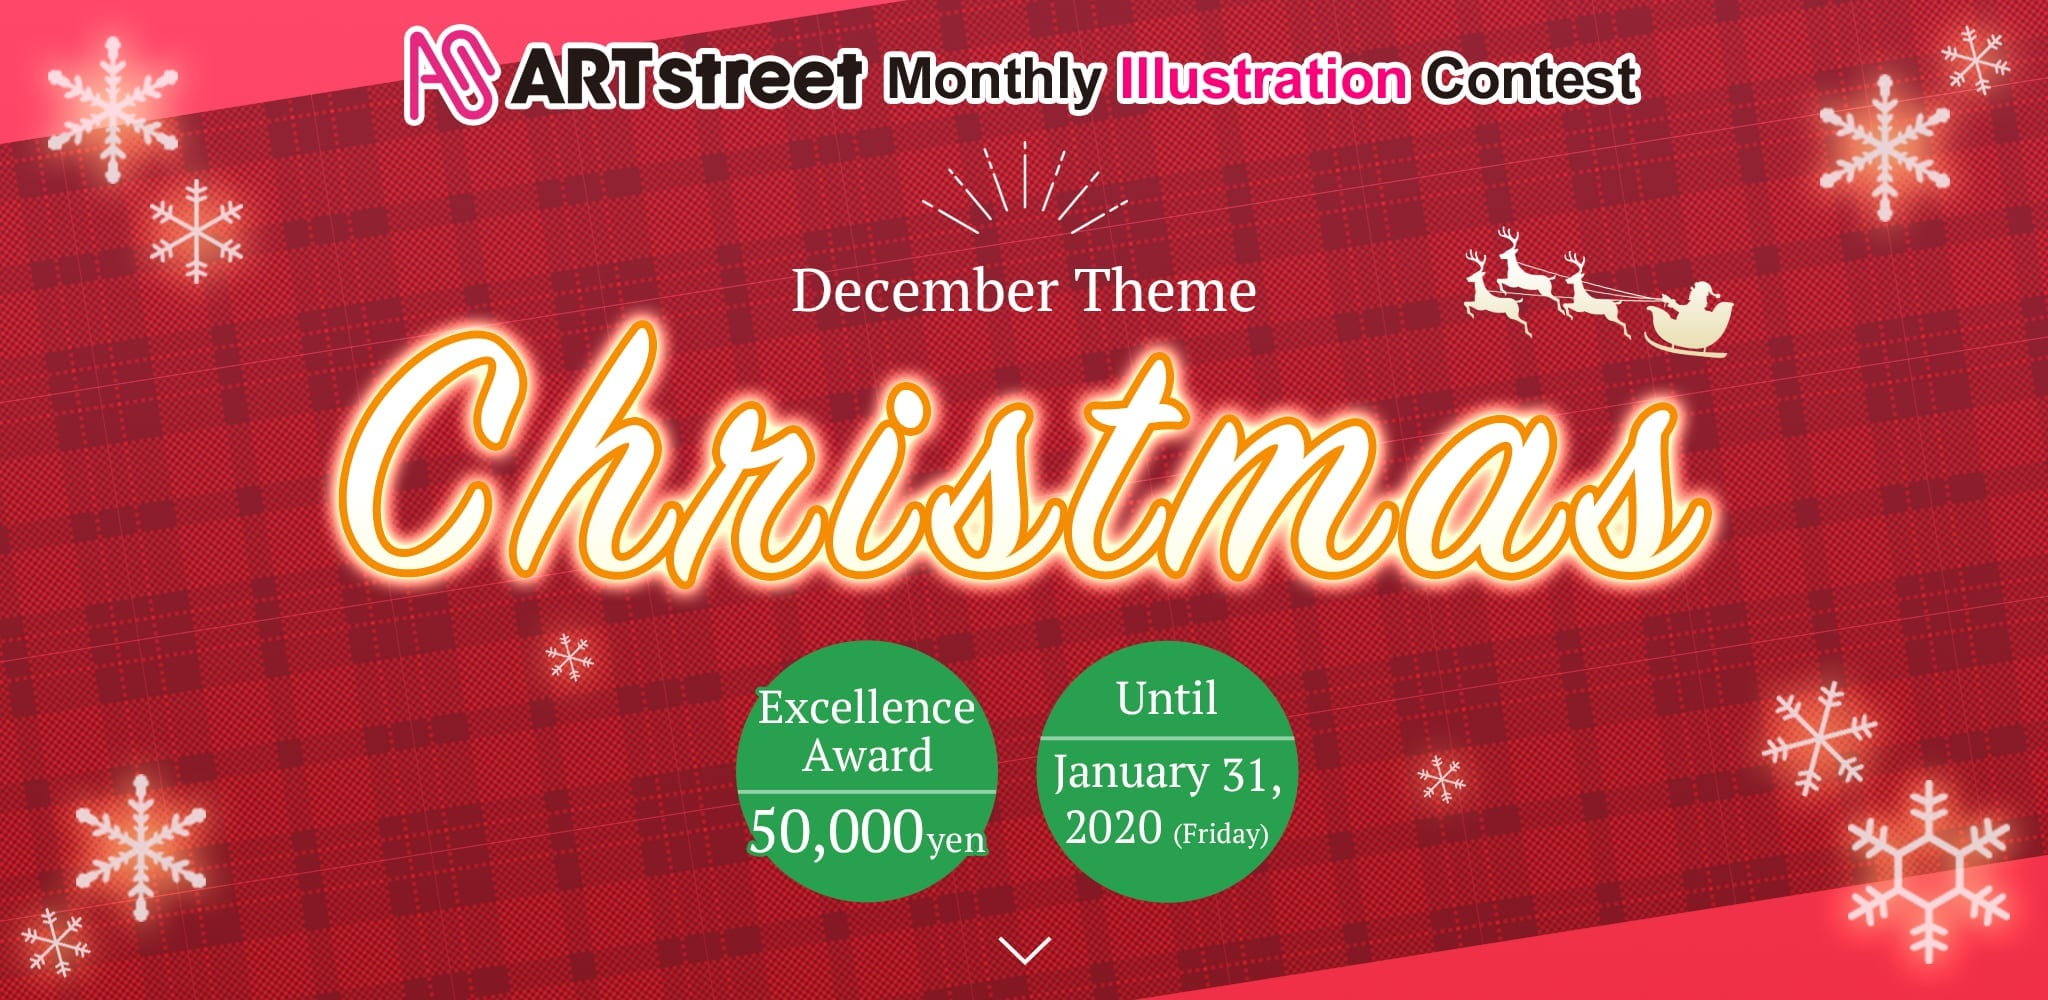 ART street Monthly Illustration Contest 201912 Theme: Christmas | Contest-ART street by MediBang